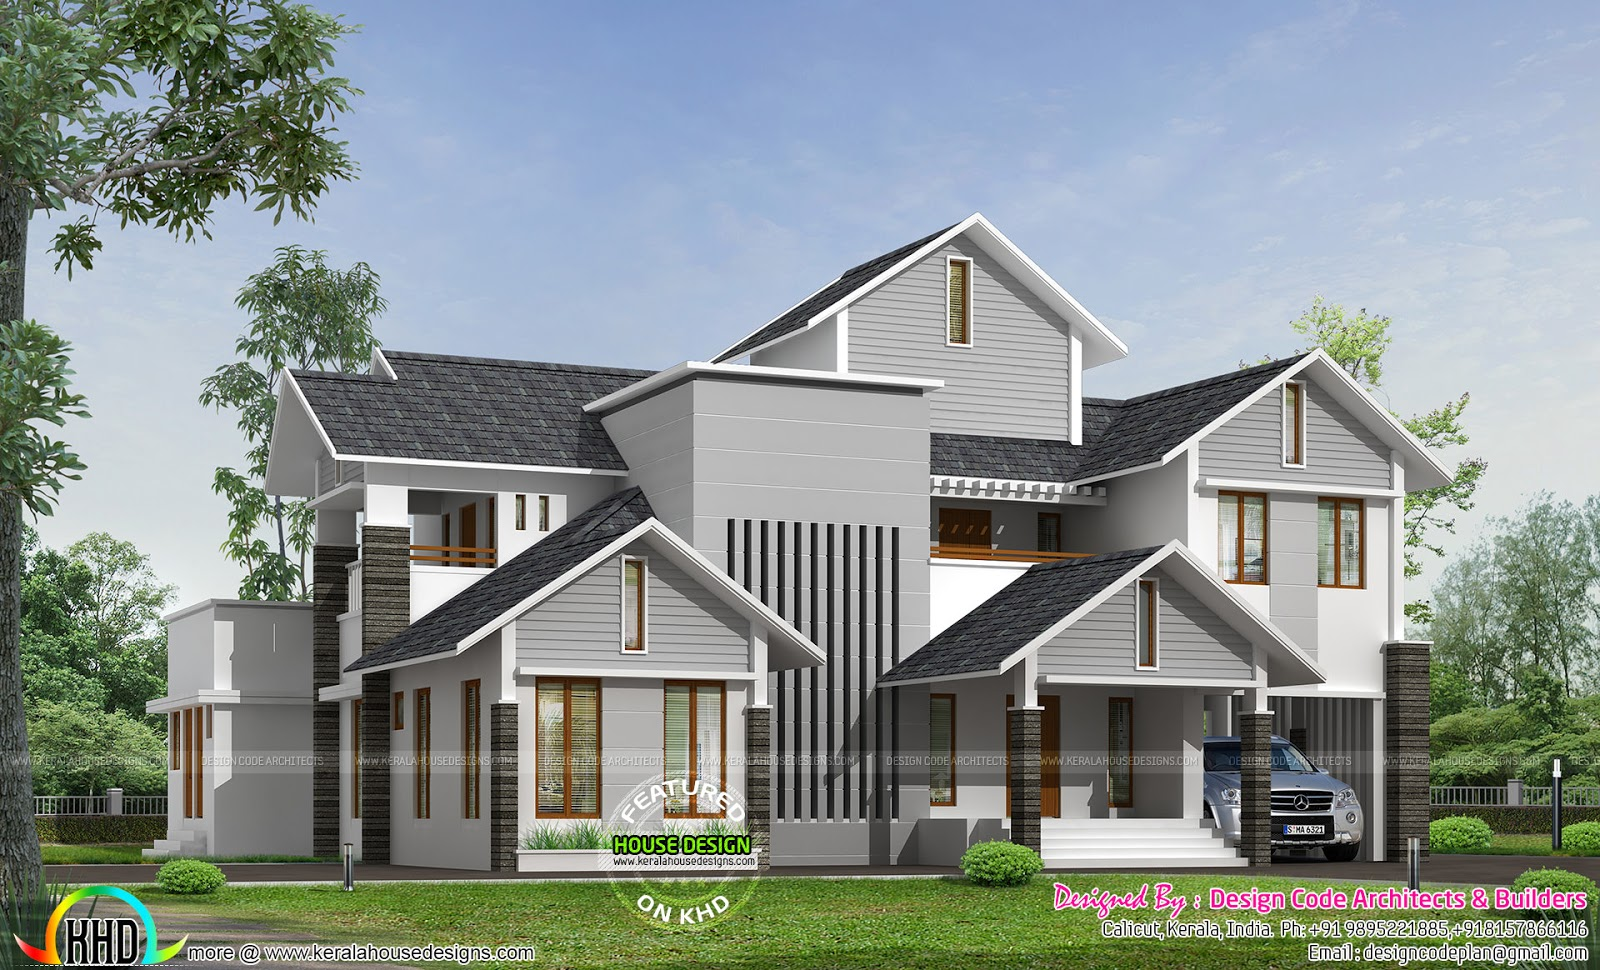 sloping roof modern home by design code architects kerala home